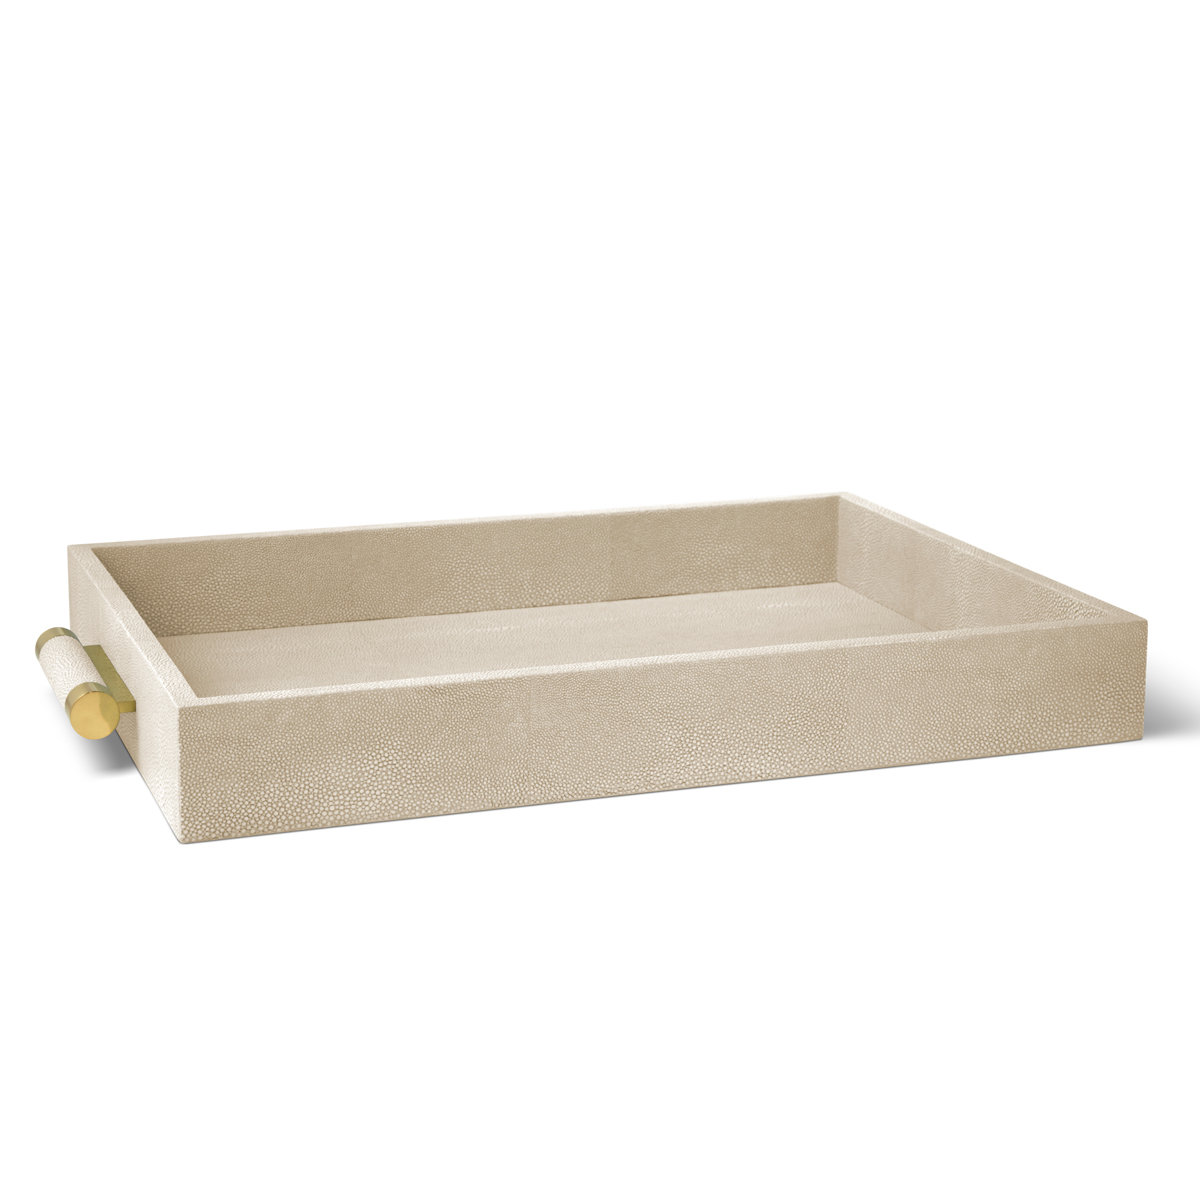 Aerin Classic Shagreen Serving Tray, Wheat